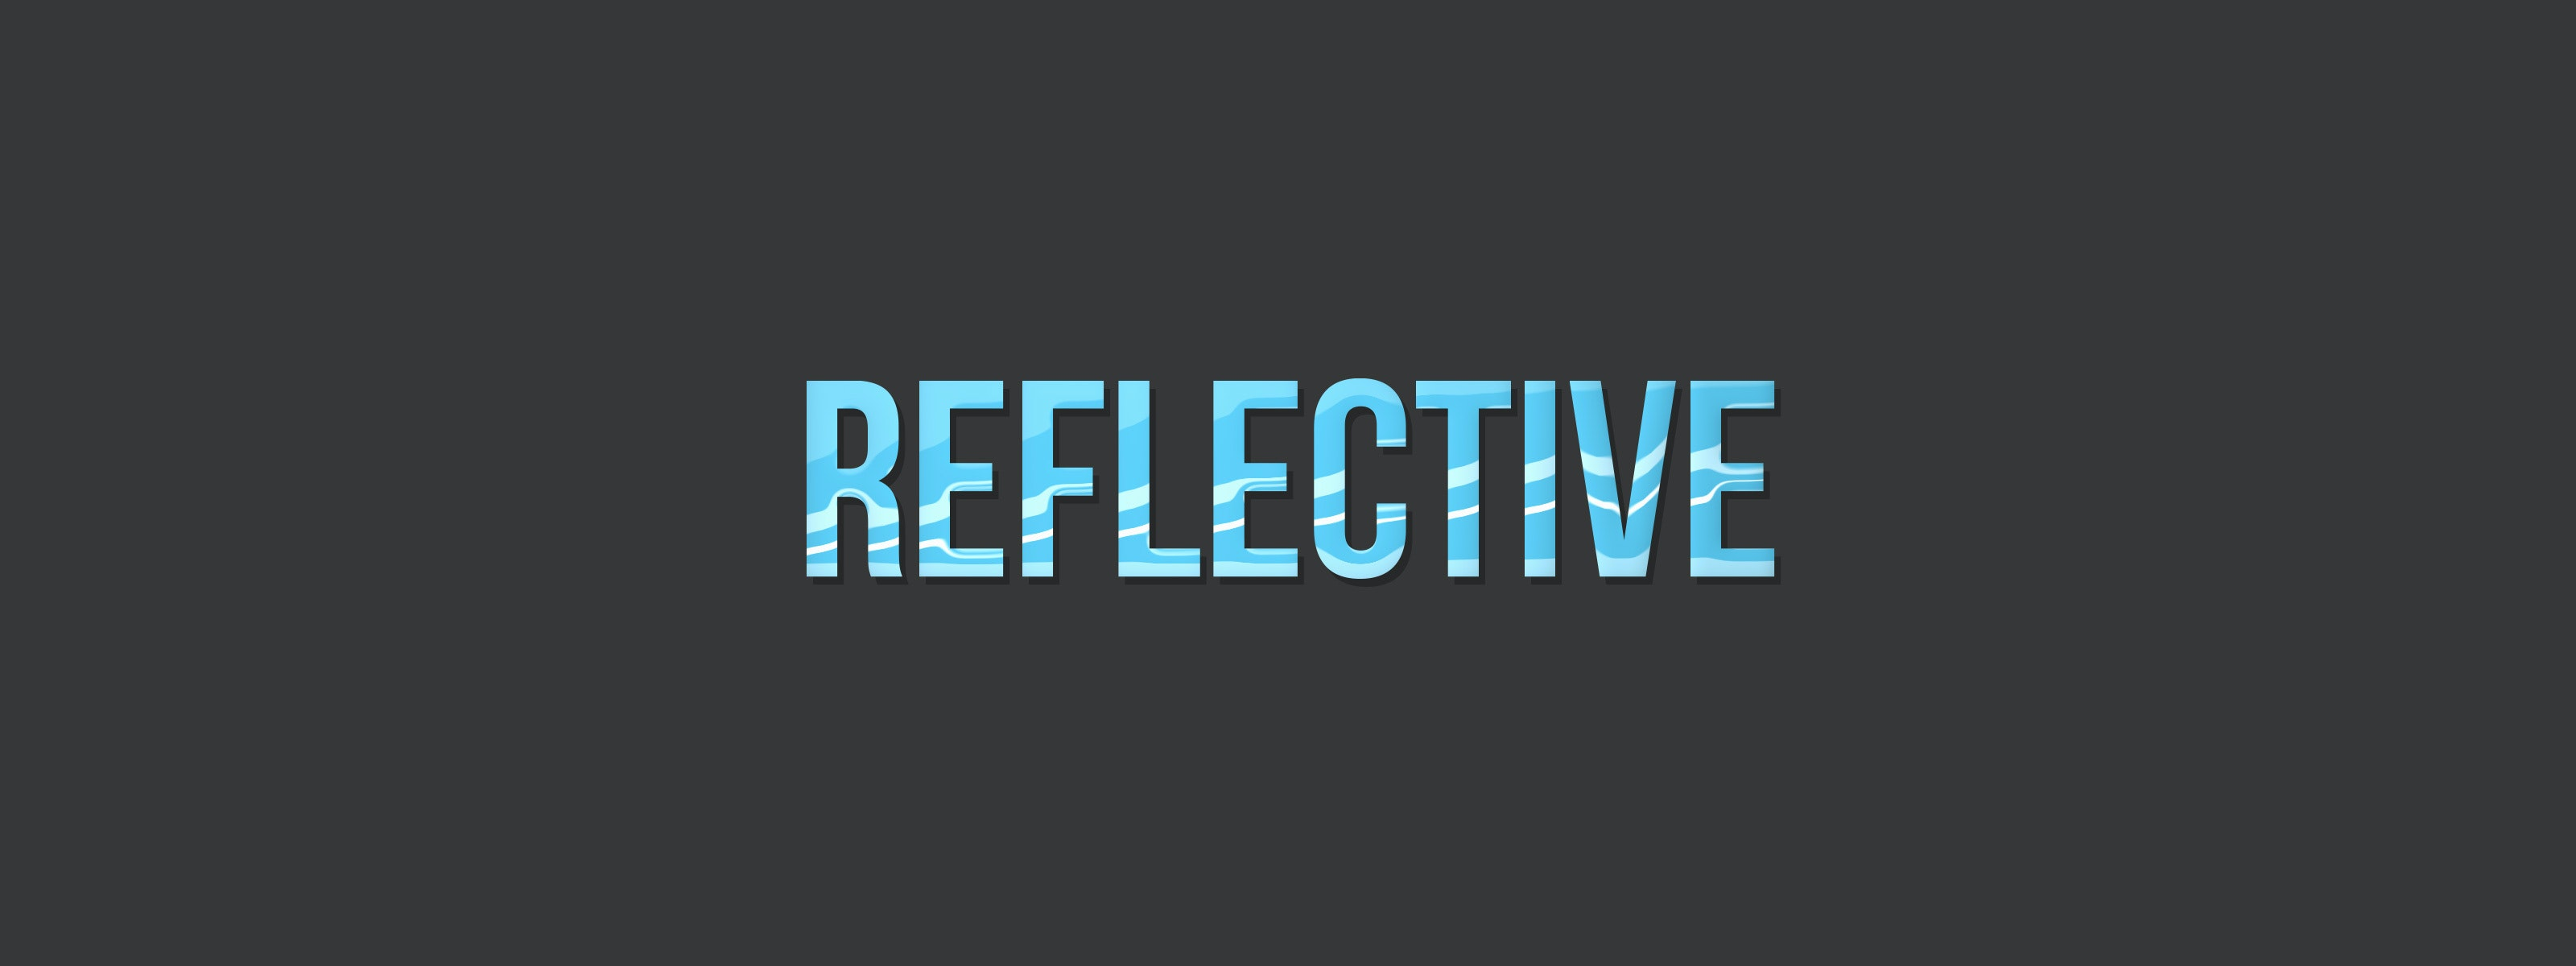 Make A Reflective Metallic Texture In After Effects | Motion Array